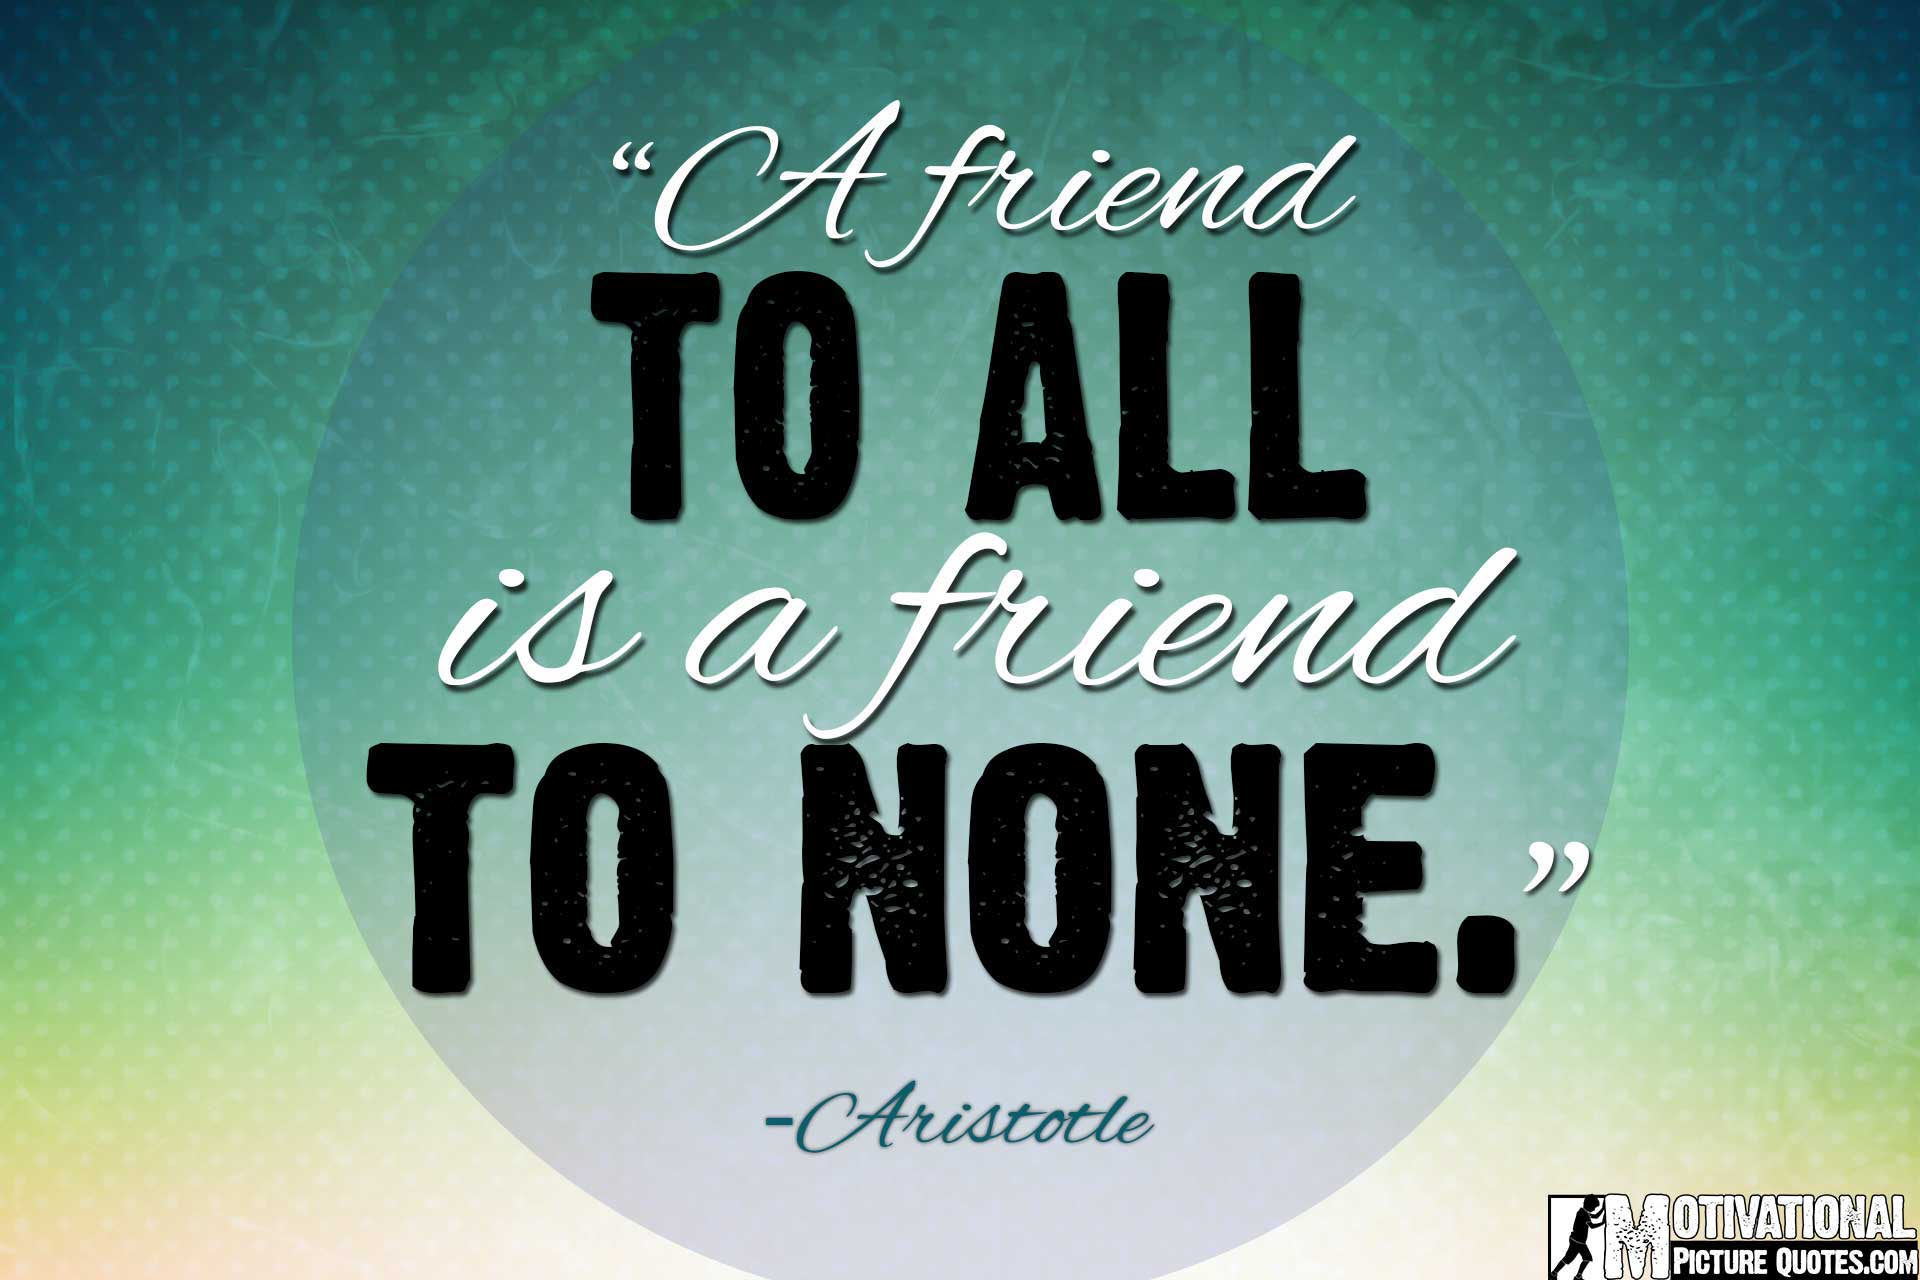 Inspirational Quotes About Friendships 25 Inspirational Friendship Quotes Images  Free Download